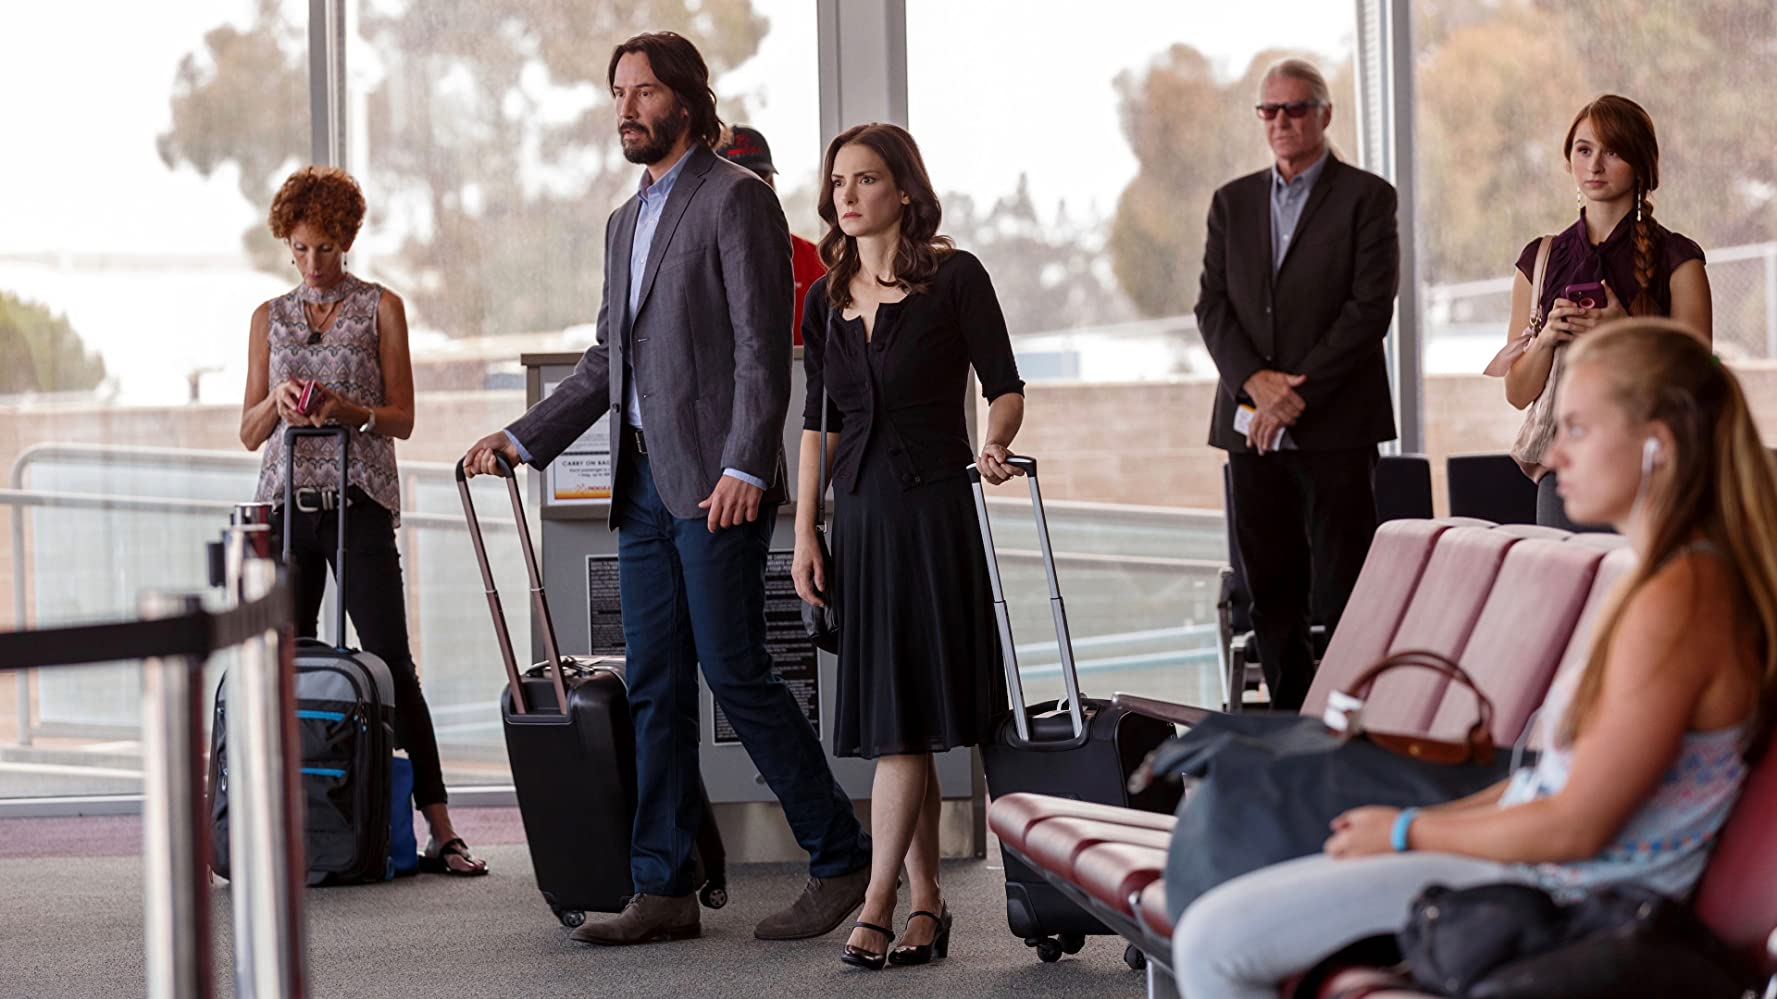 Keanu Reeves and Winona Ryder in Destination Wedding (2018)